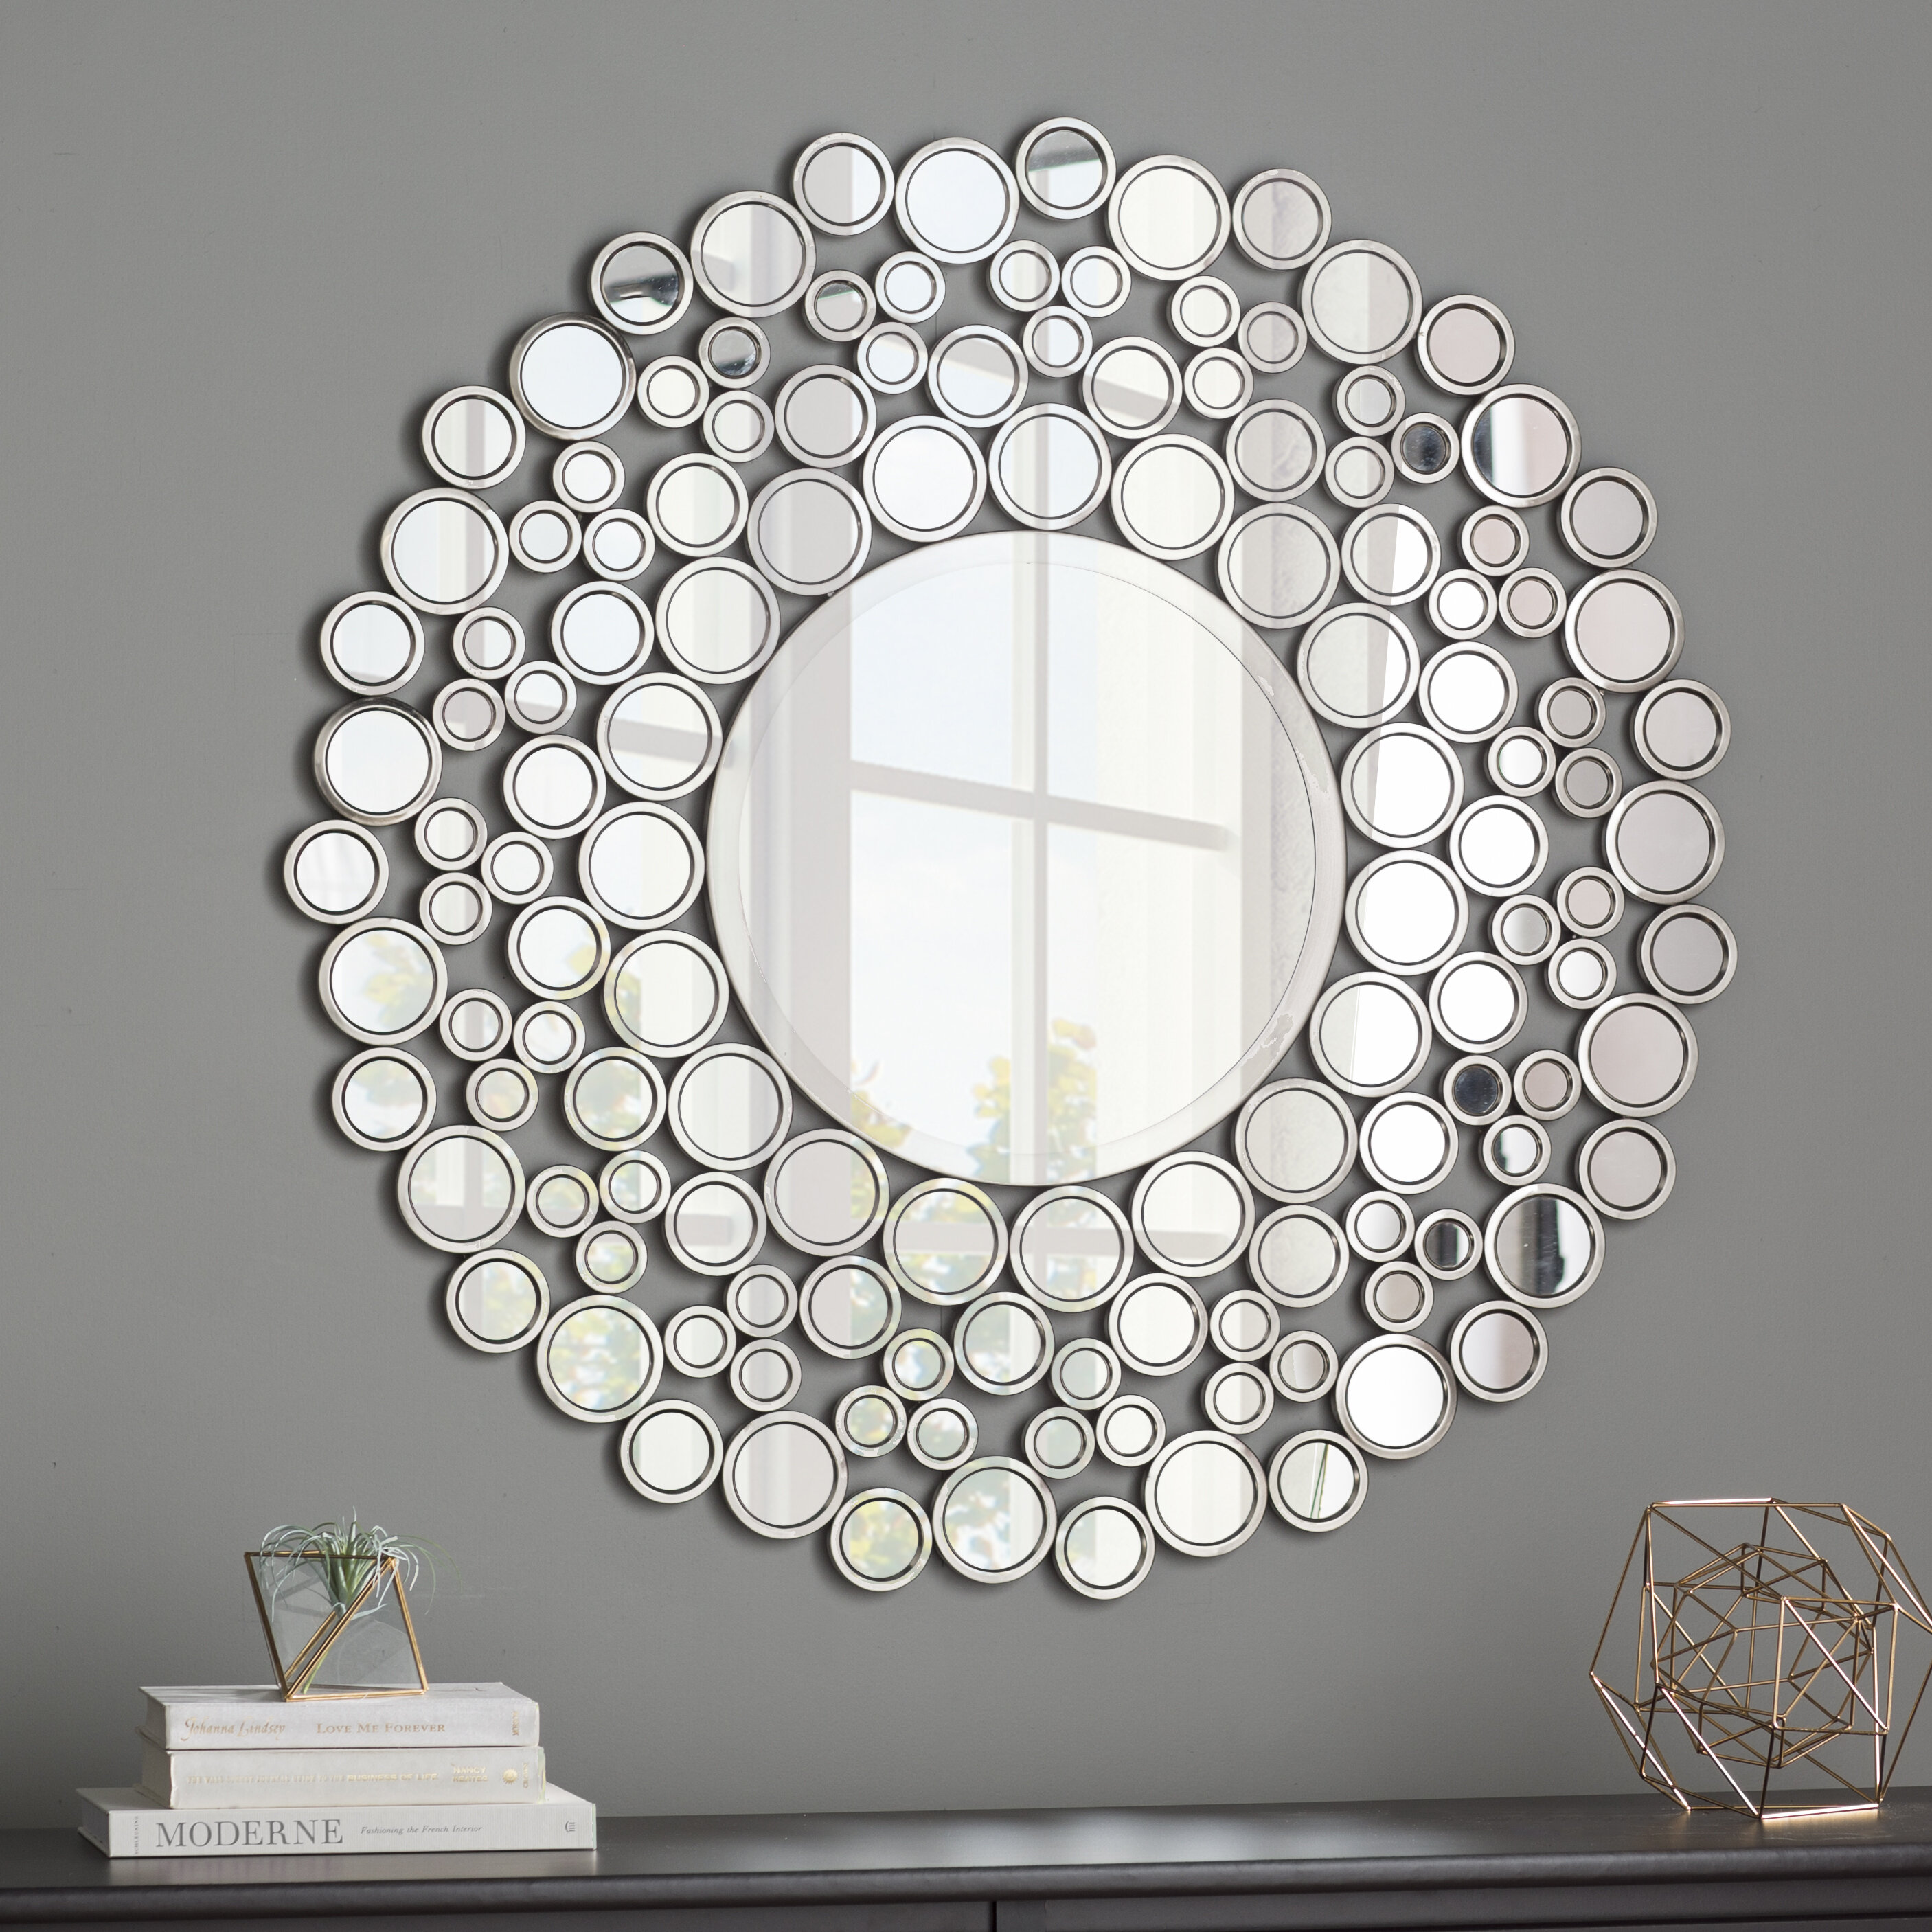 Large Oversized Round Mirrors You Ll Love In 2020